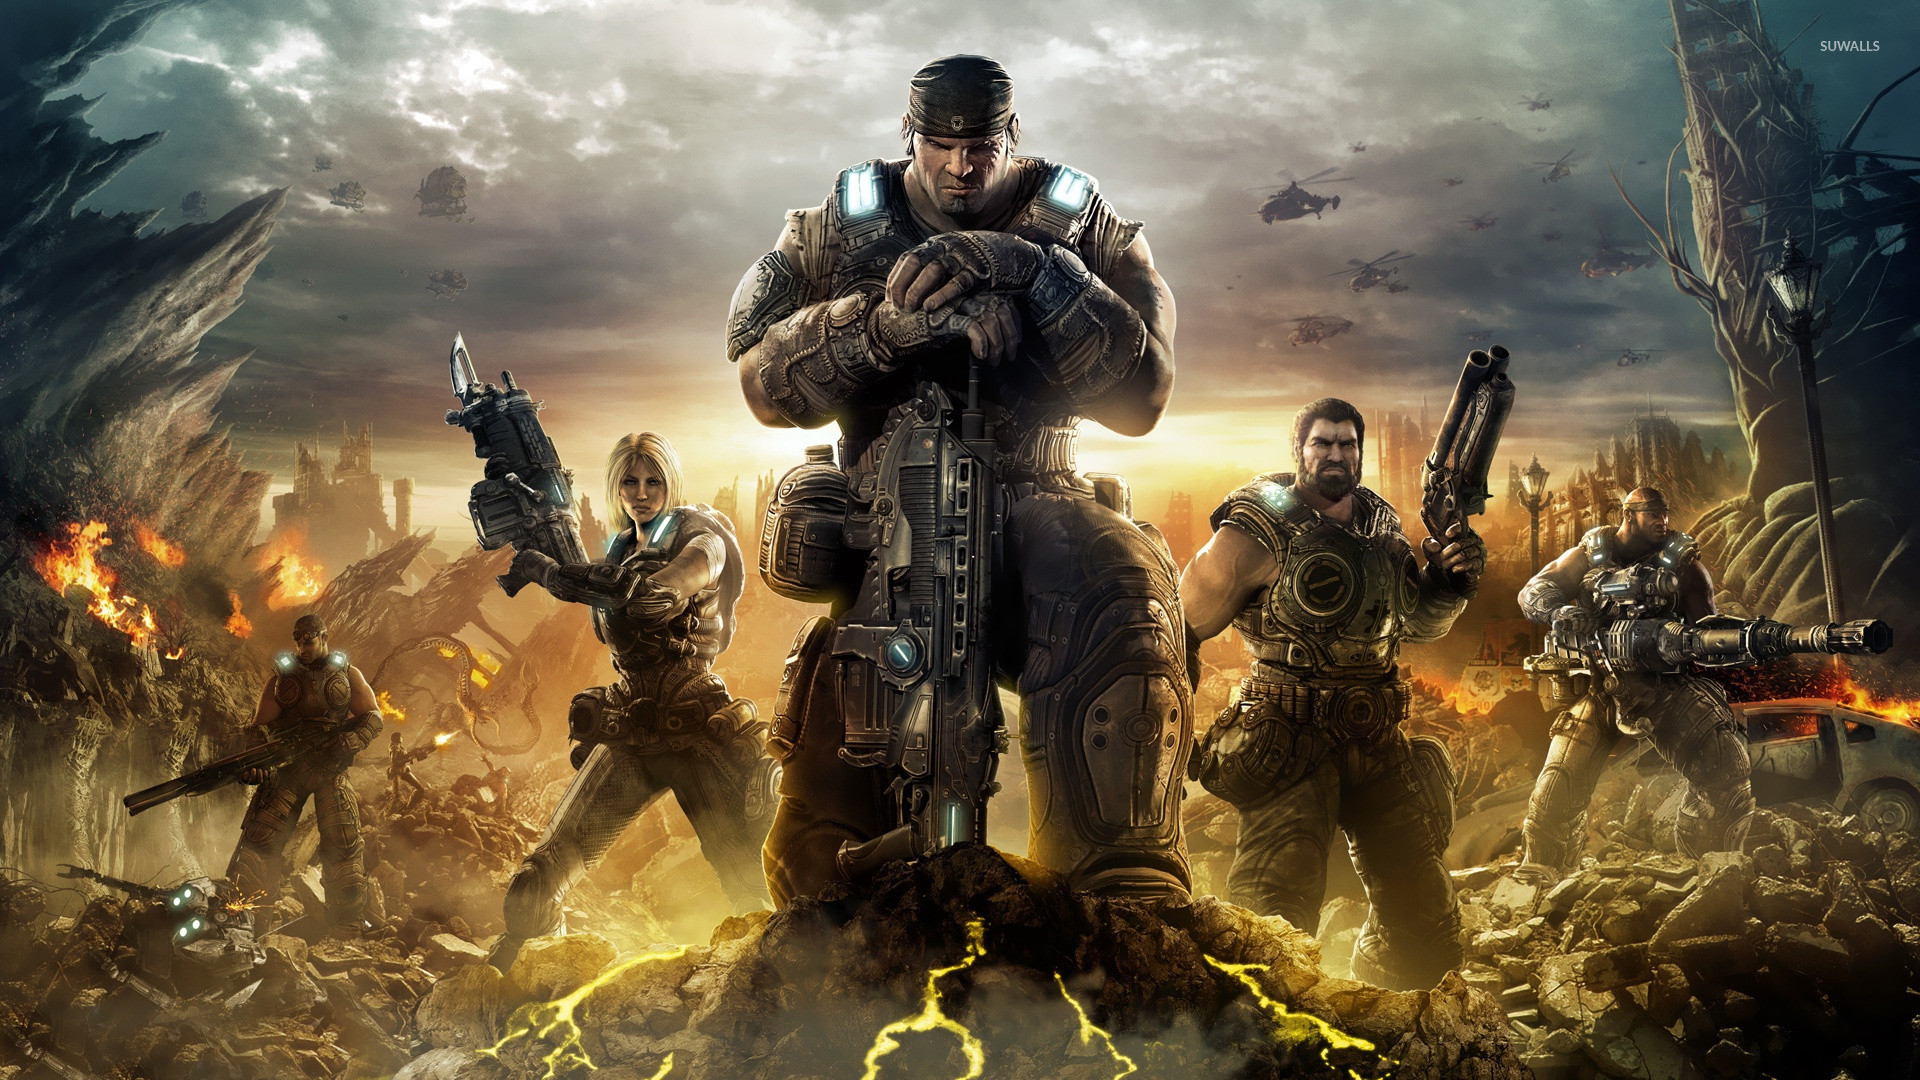 1920x1080 Gears of War 3 [4] wallpaper